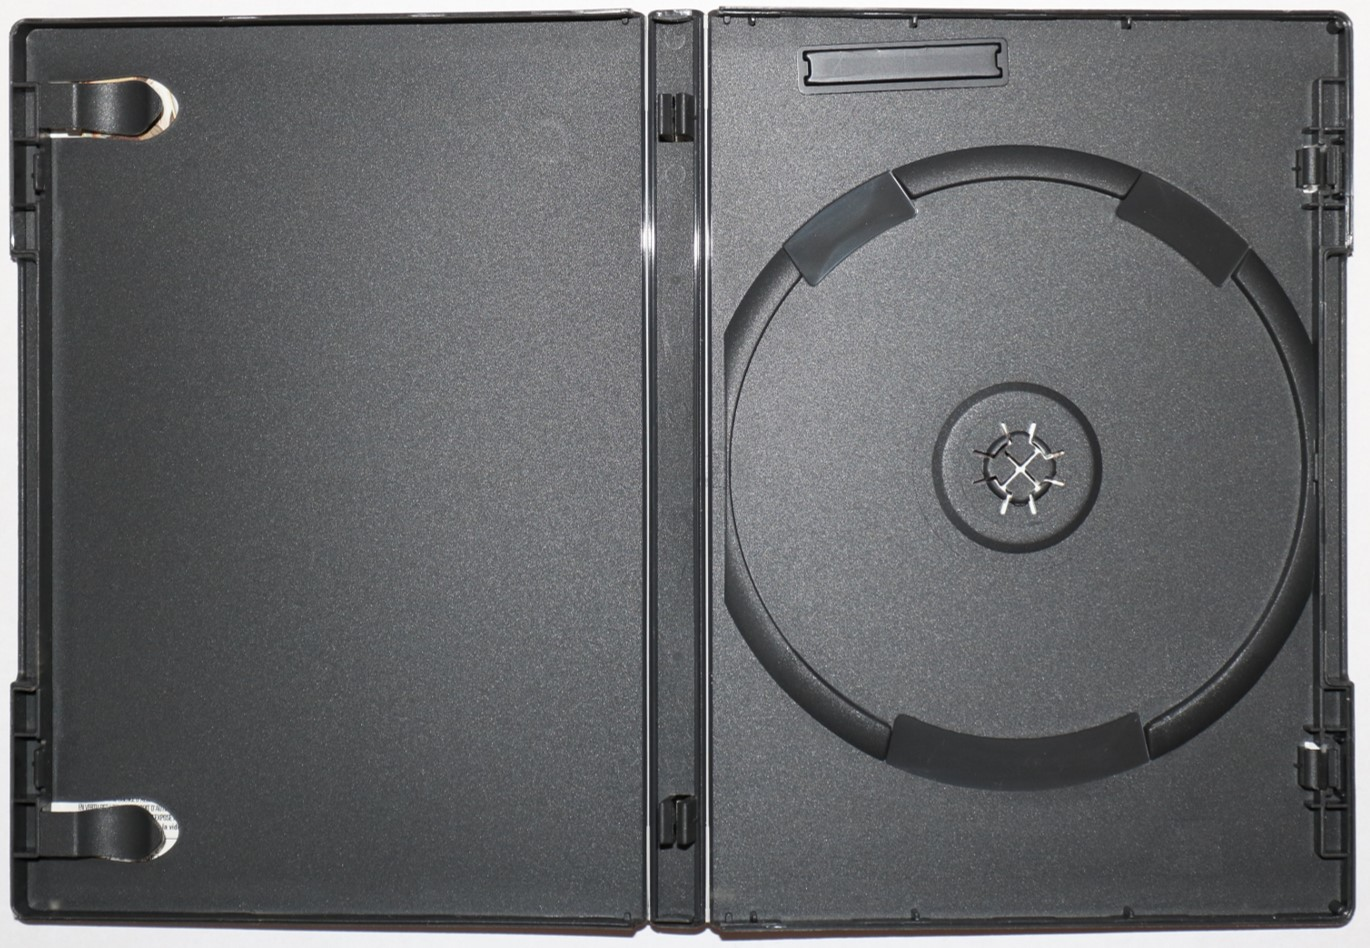 An Amaray case for storing DVDs and Blu-ray movie discs. The case is a one-piece construction, same thickness as a standard jewel case, and made out of polypropylene, making the case less brittle.